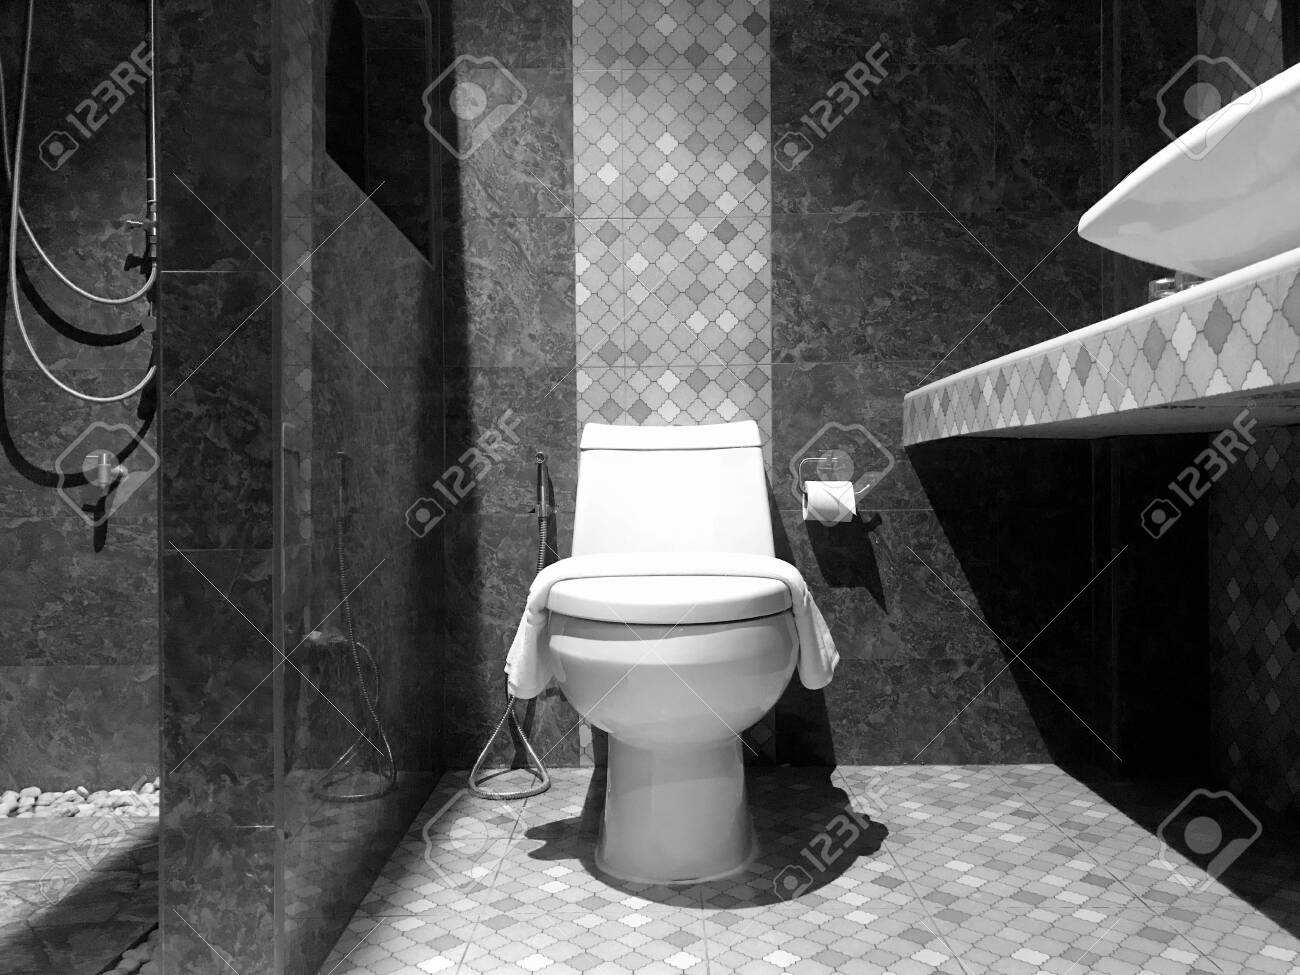 White Modern Flush Toilet Bowl Against Marble Wall Bathroom Stock Photo Picture And Royalty Free Image Image 140168731